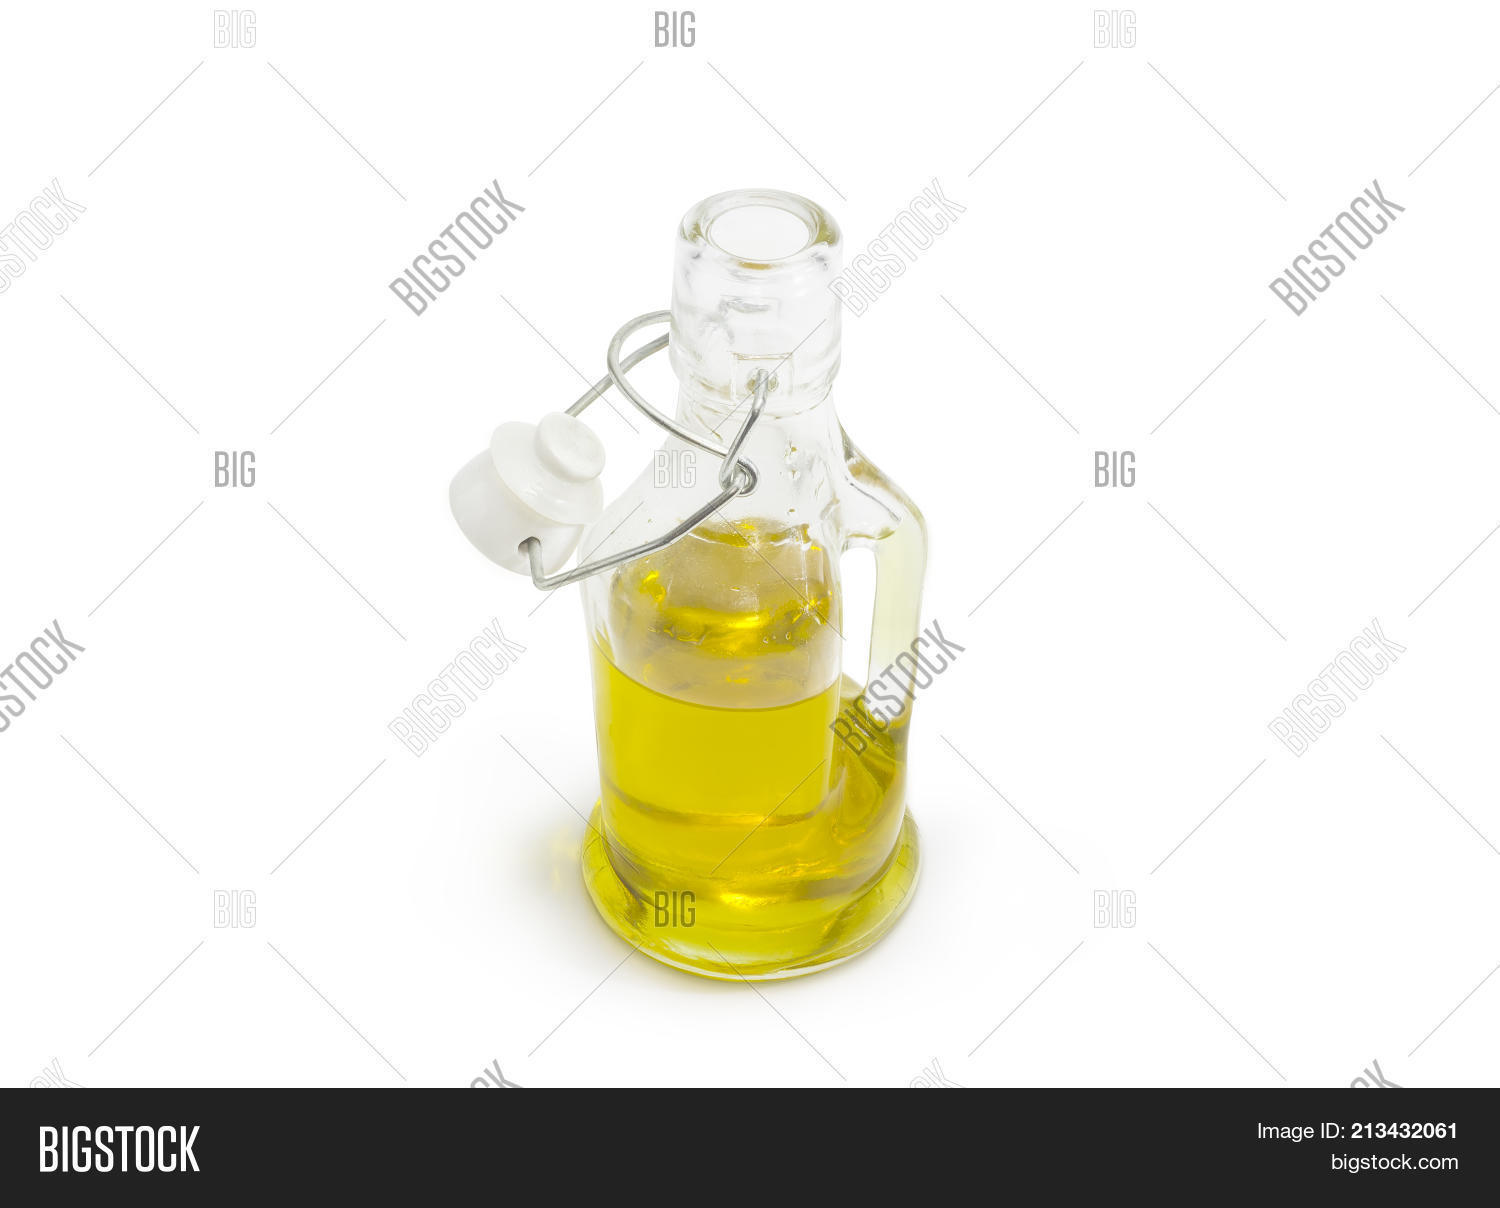 Small Glass Bottle Image & Photo (Free Trial) | Bigstock